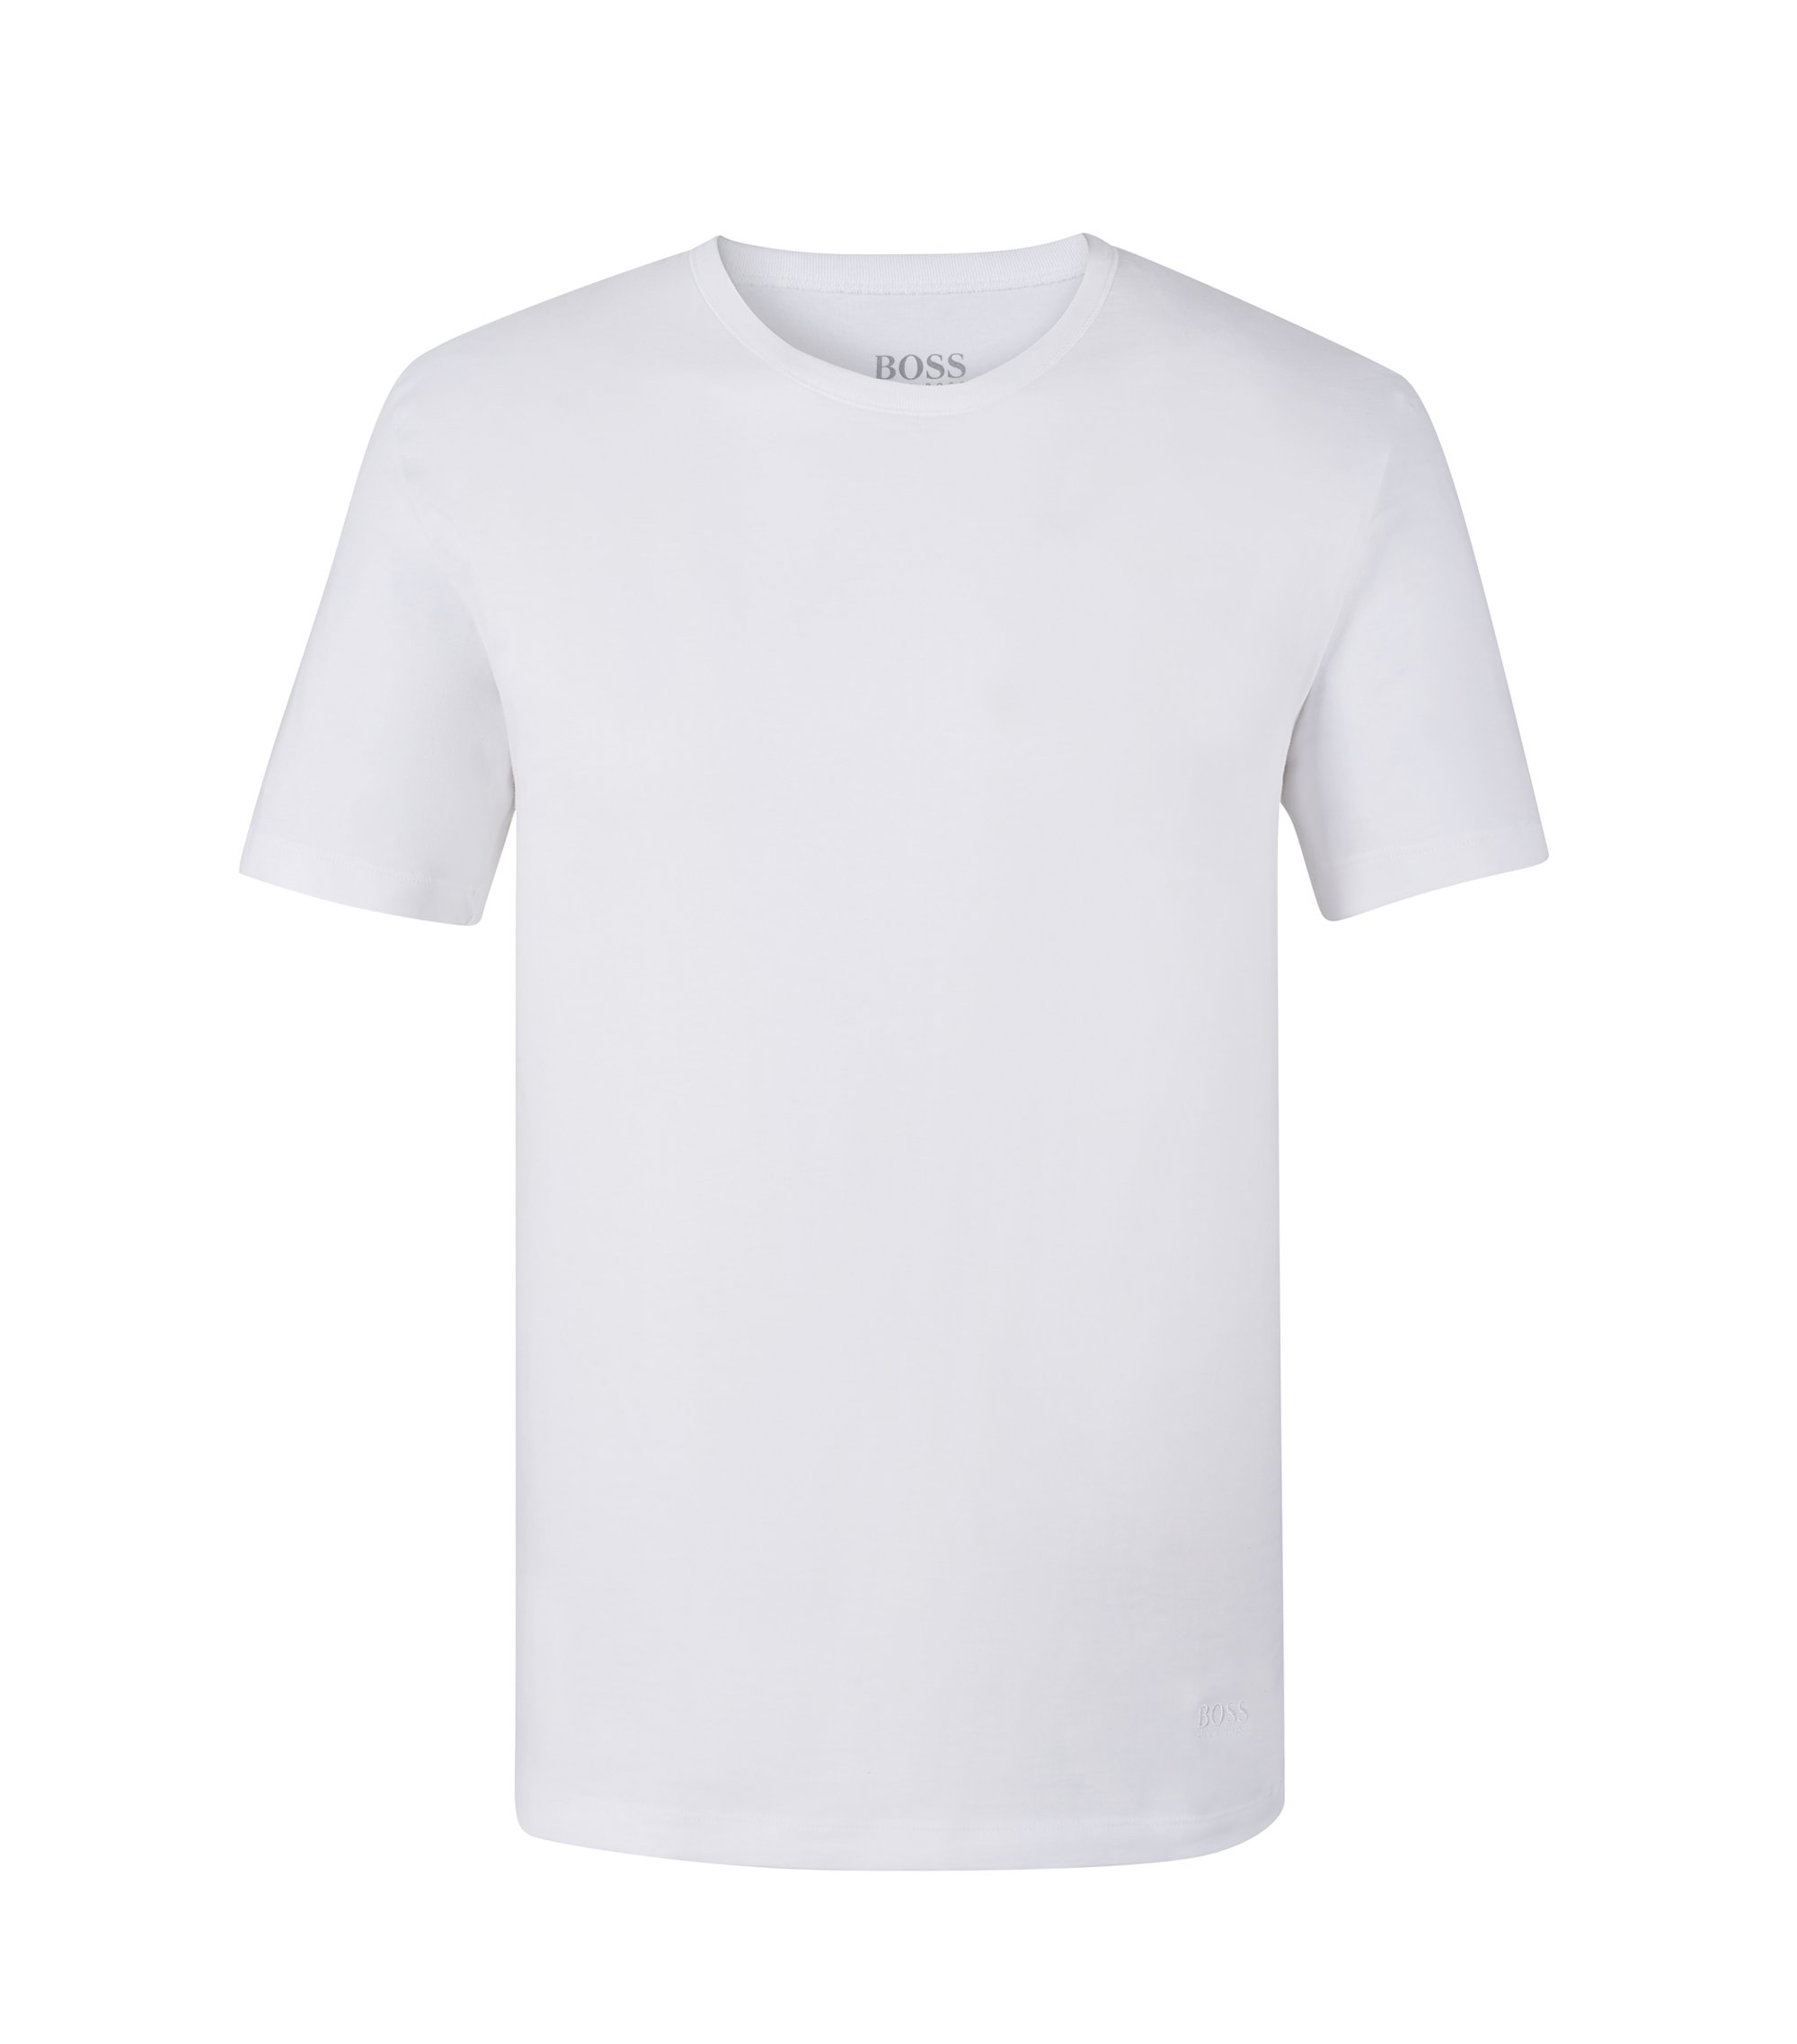 Cotton Jersey T-Shirt, 3-Pack | T-Shirt RN, White